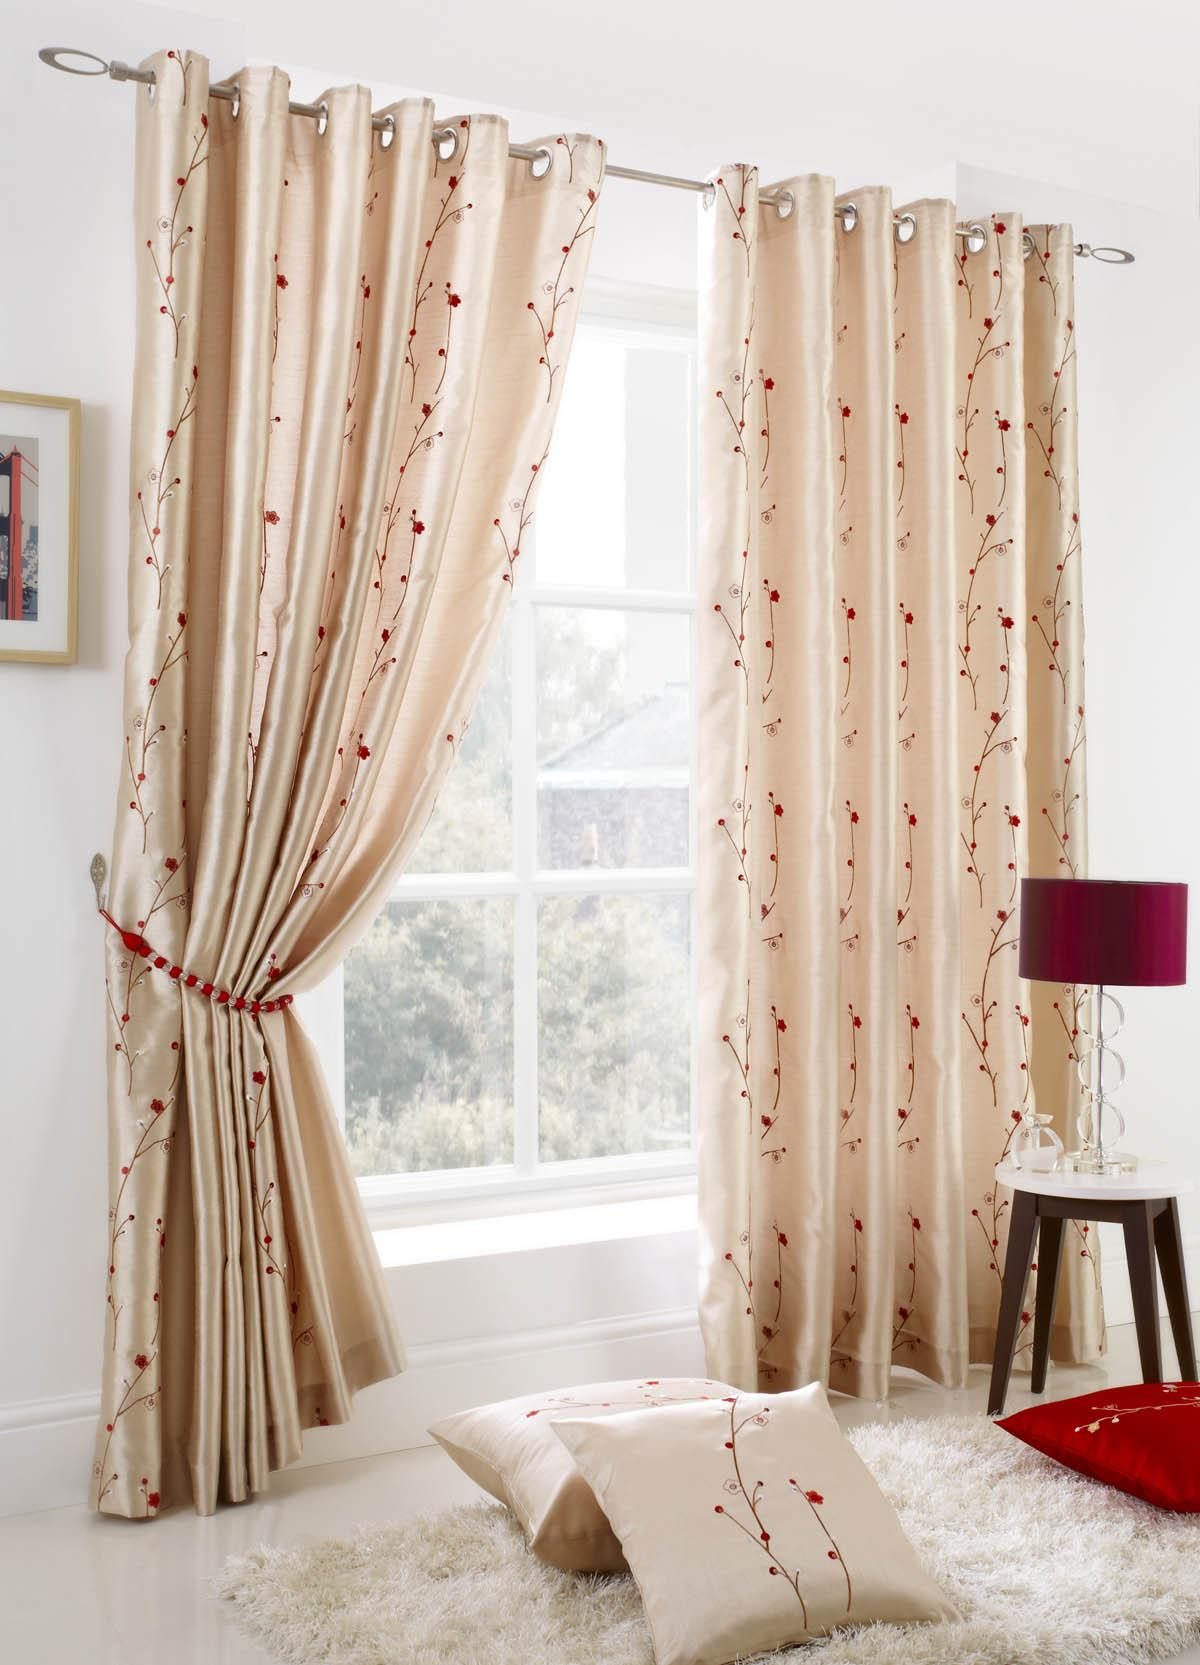 Stockists of Cream Blossom Ready Made Lined Eyelet Curtains